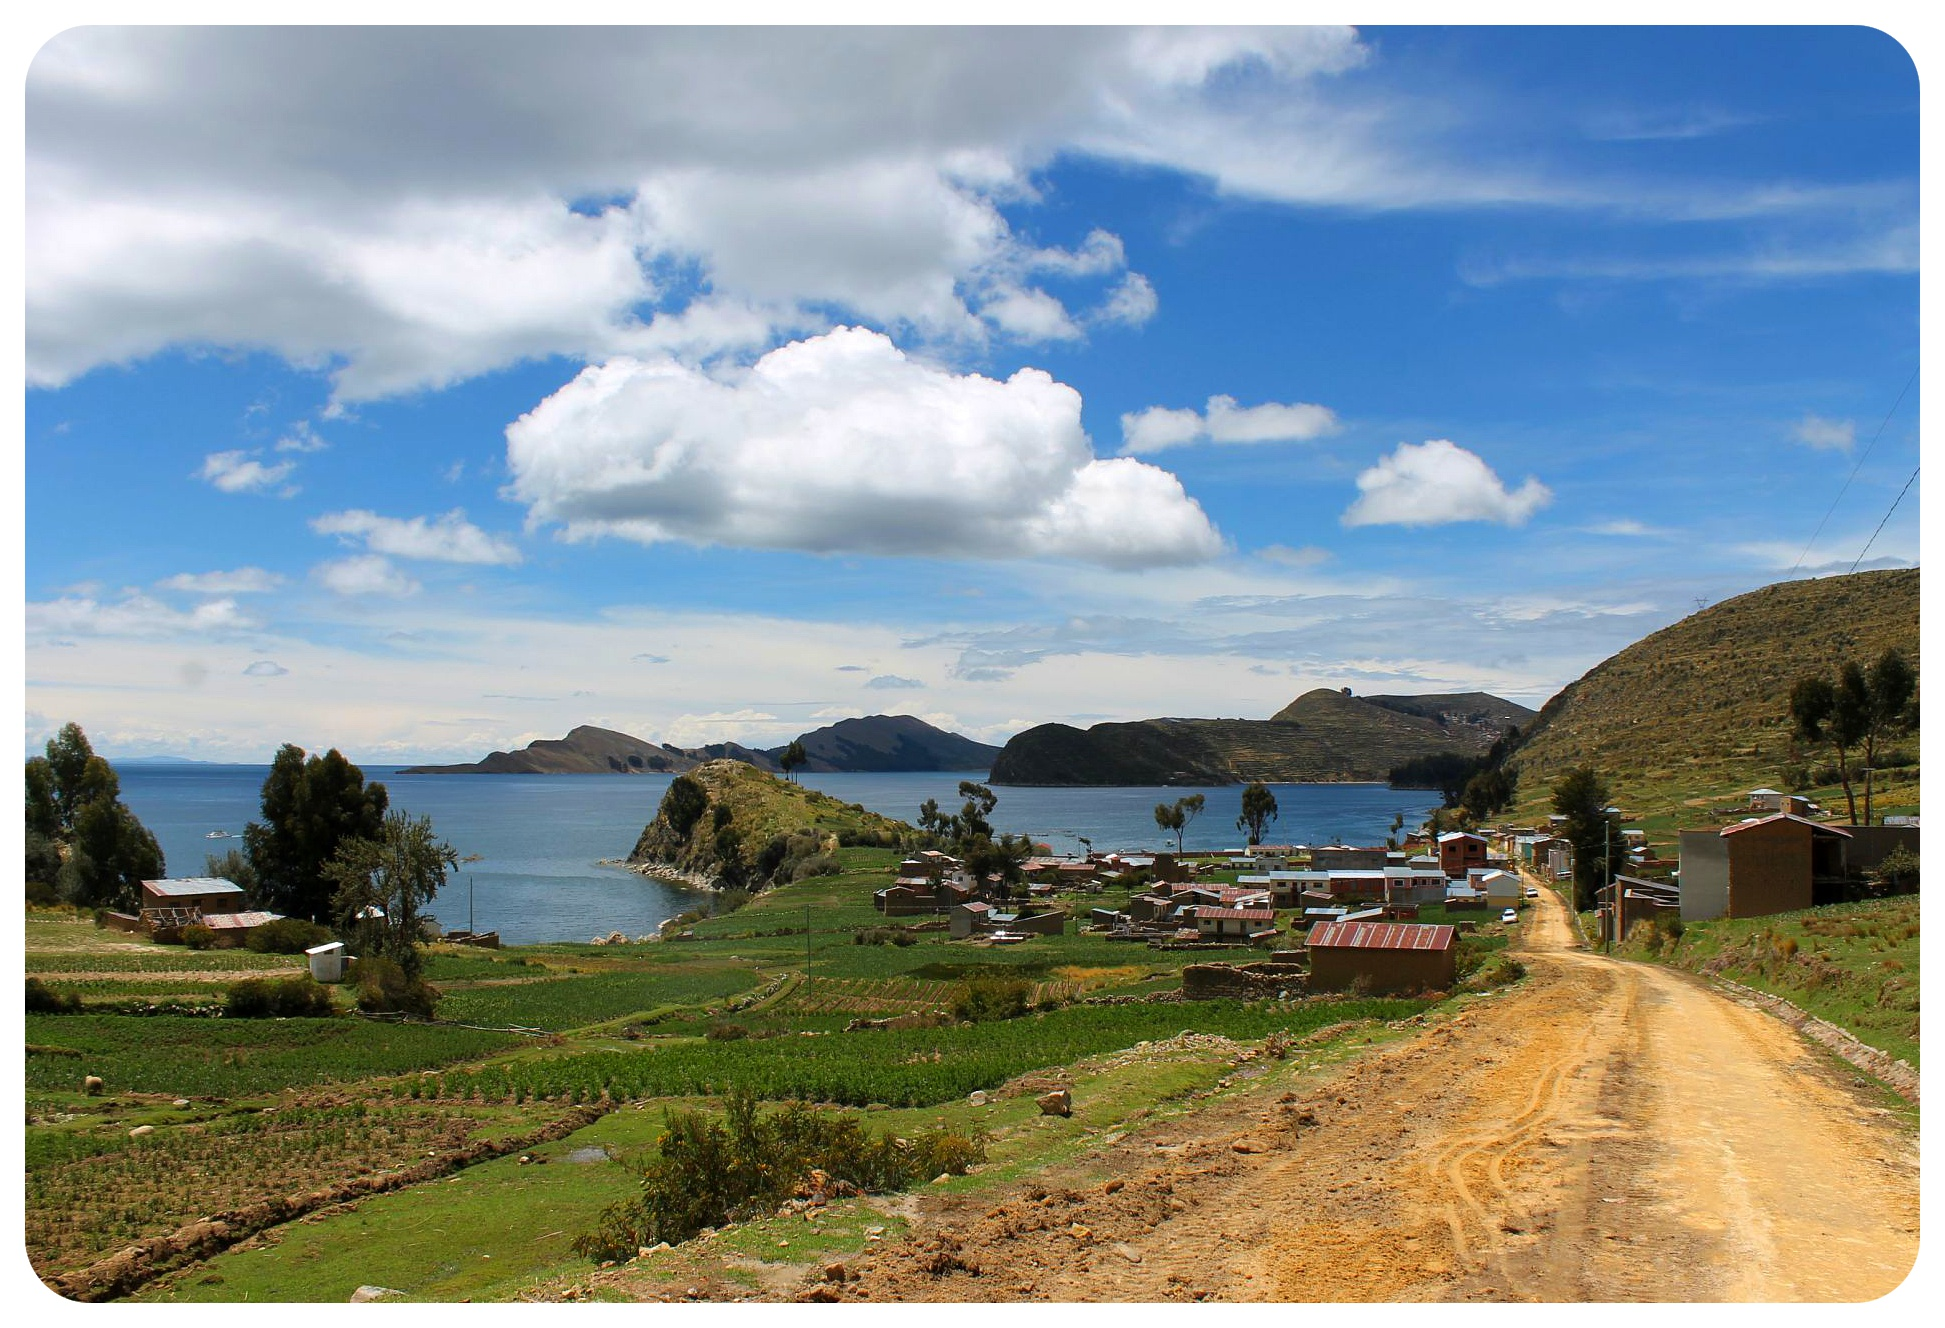 lake titicaca yampupata road